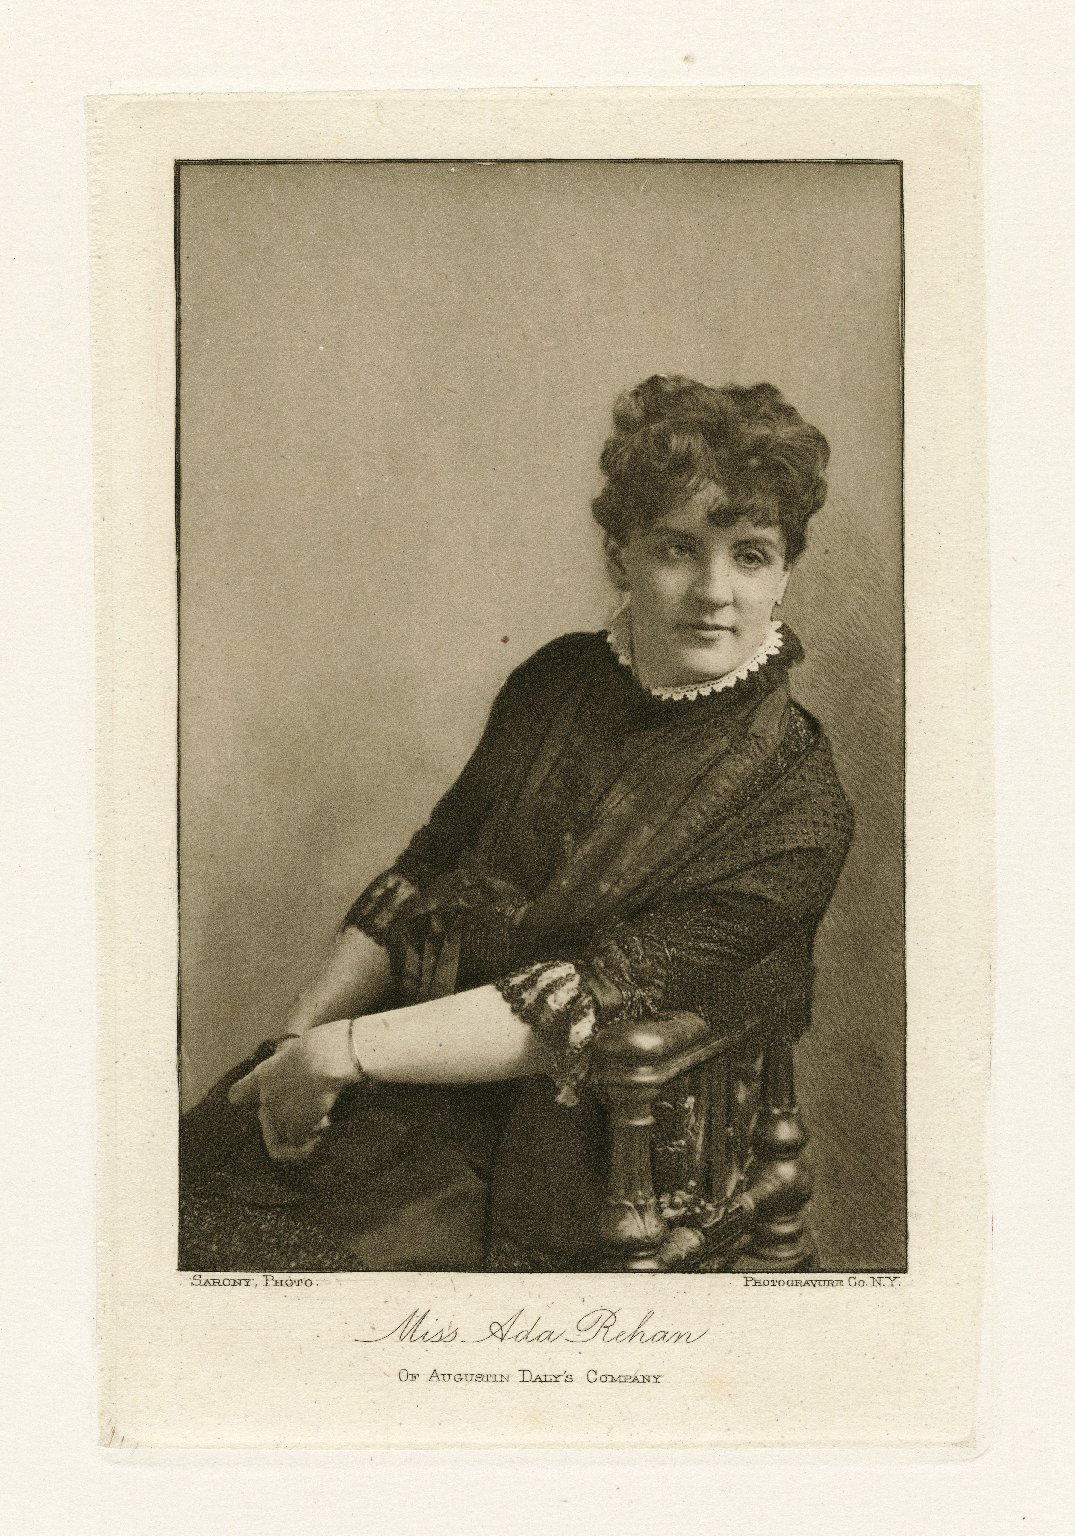 Miss Ada Rehan of Augustin Daly's company [graphic] / Sarony, photo. ; Photogravure Co. N.Y.